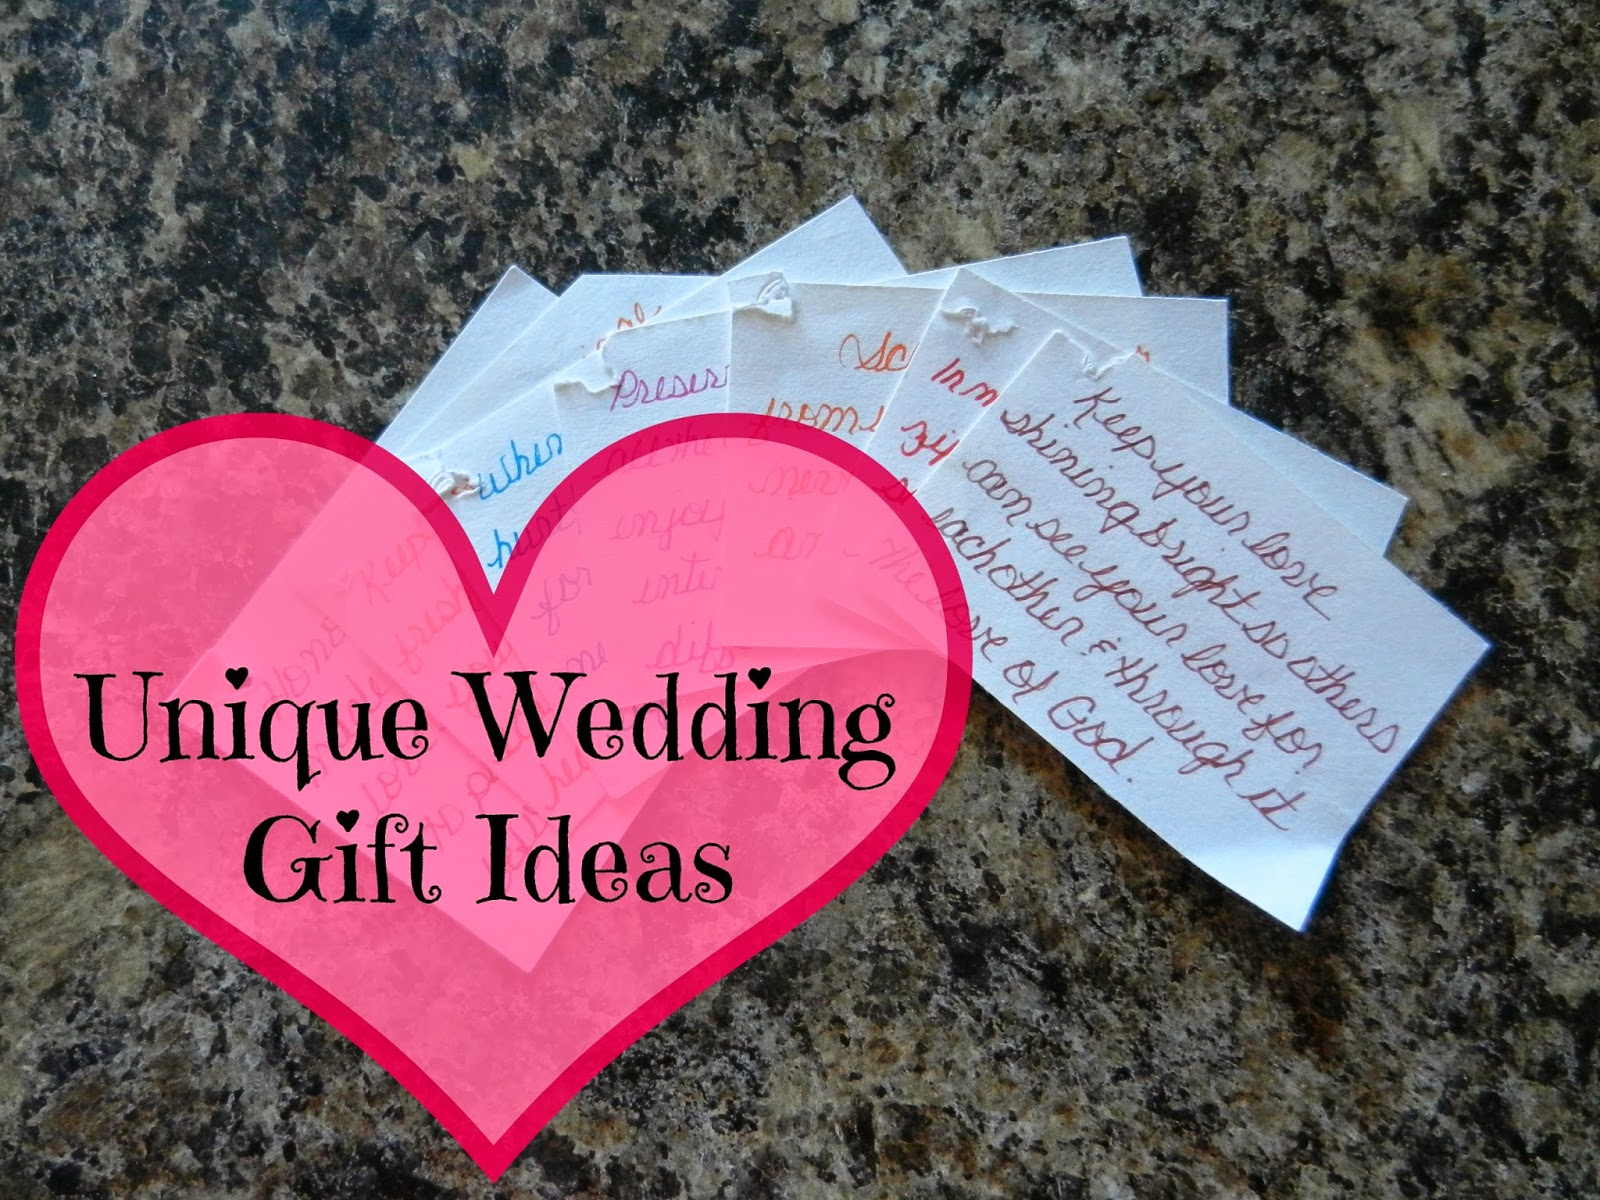 Gifts Unique Gifts Engagement Gift Ideas - creative-ideas.us